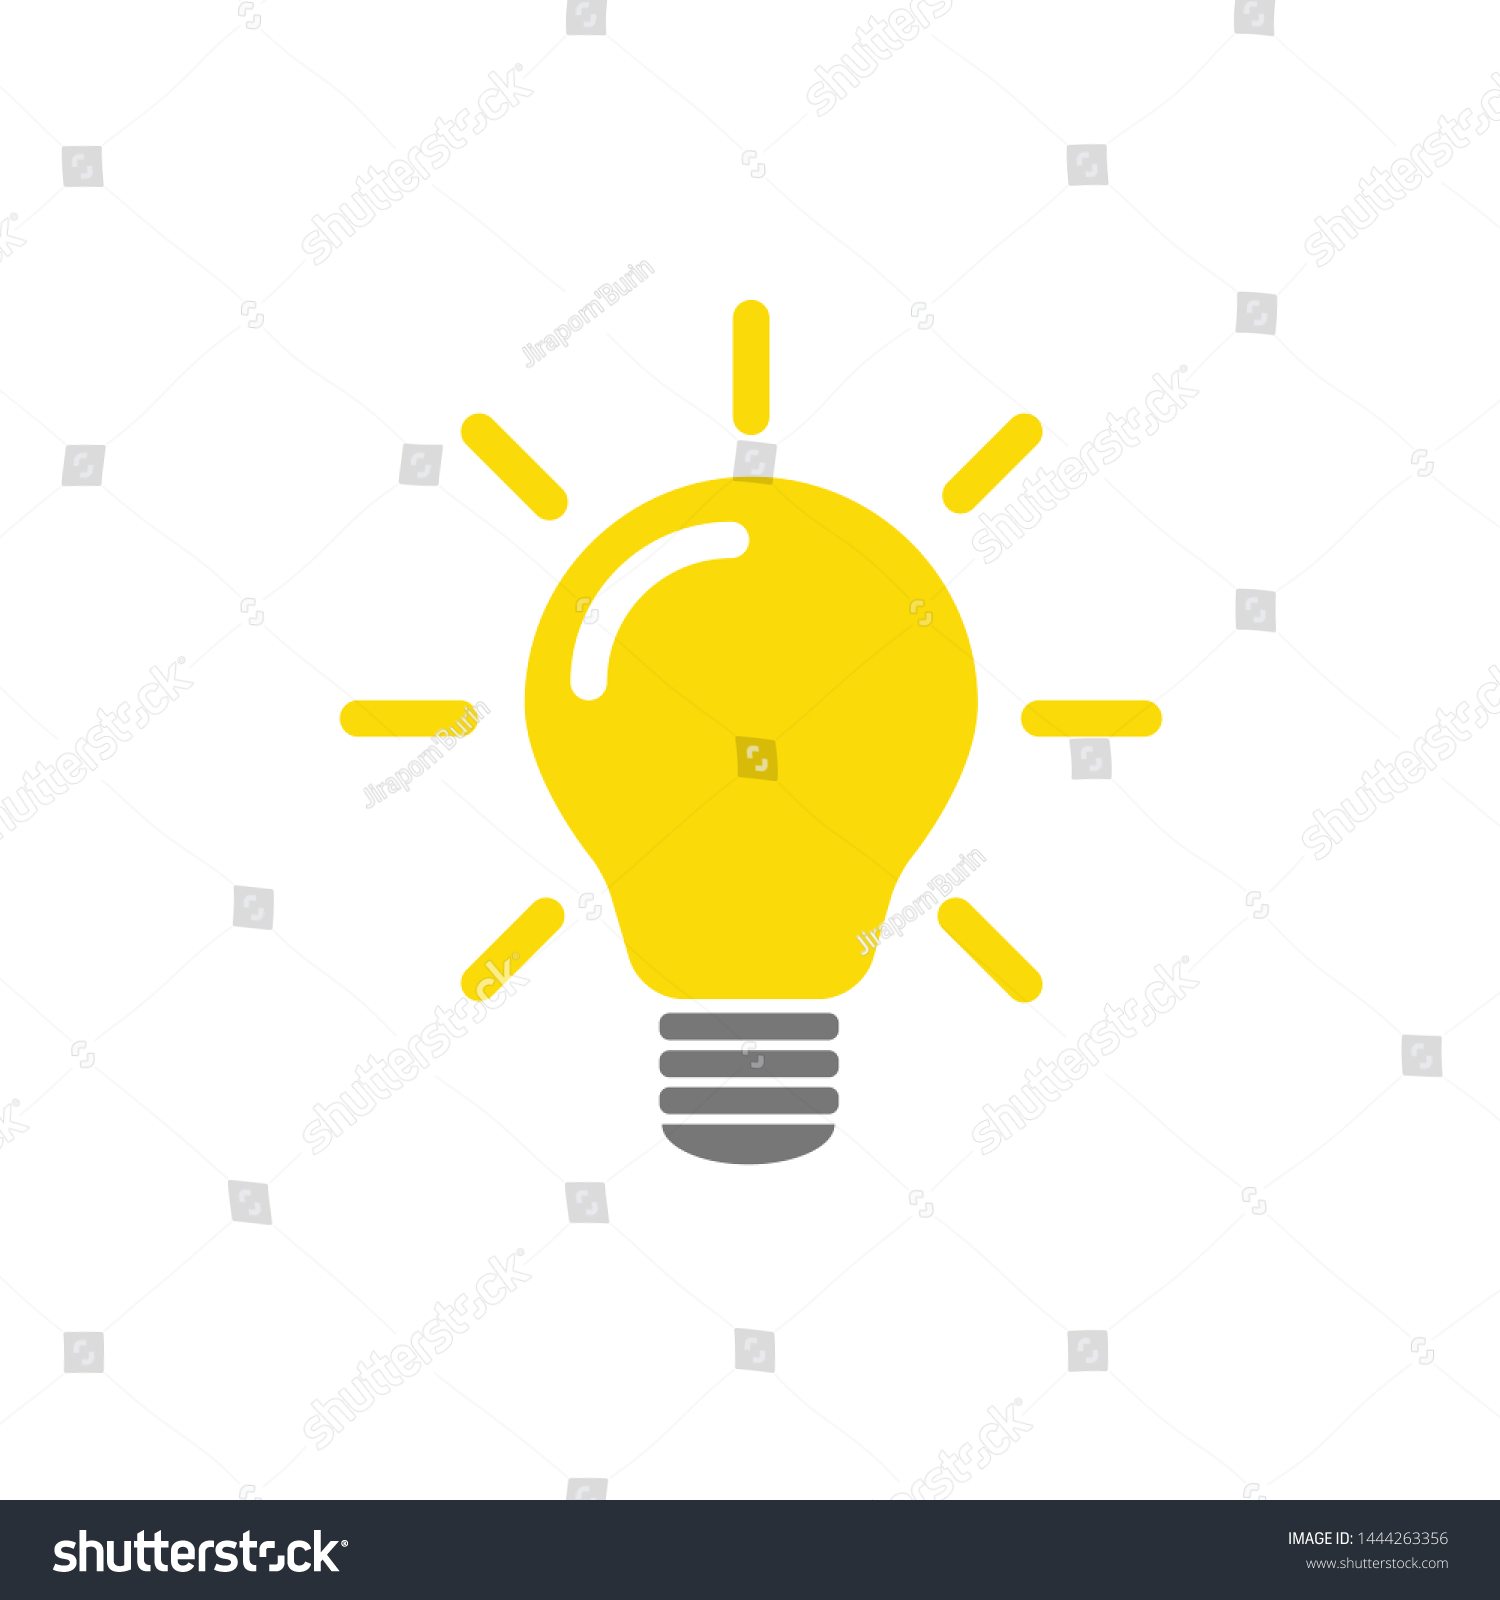 The light bulb is full of ideas And creative thinking, analytical thinking for processing. Light bulb icon vector. ideas symbol illustration. #1444263356